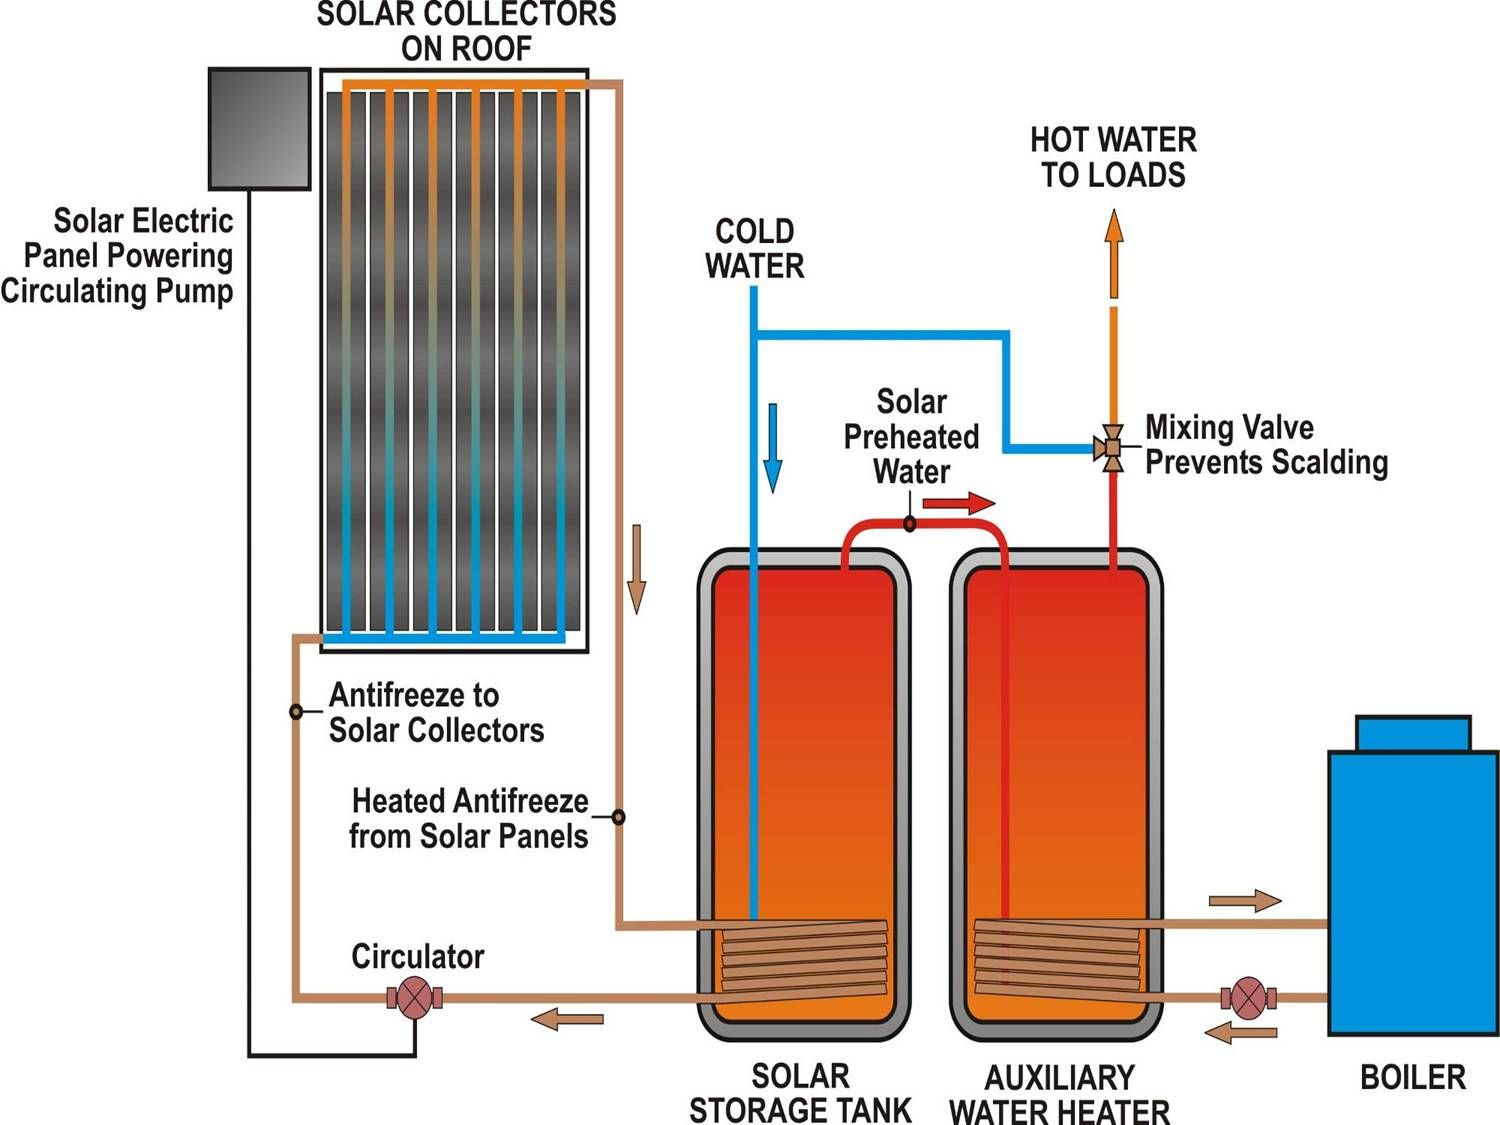 Energy Transformation Diagram Examples 1975 Porsche 914 Wiring Domestic Solar Hot Water Offthegrid Pinterest